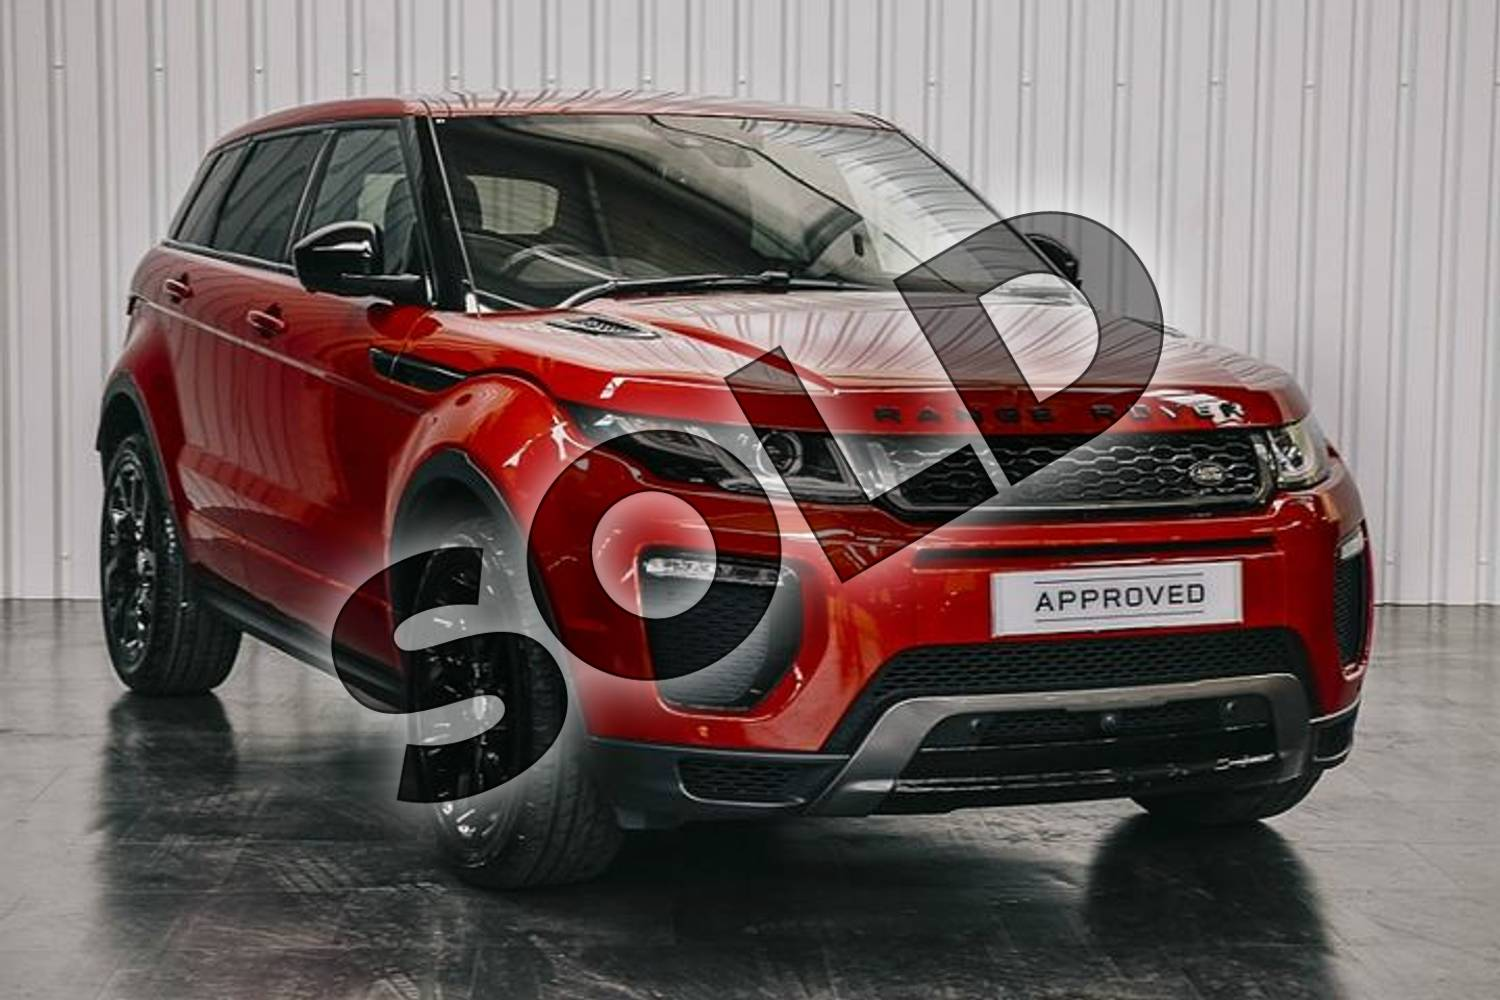 2019 Range Rover Evoque Diesel Hatchback Diesel 2.0 TD4 HSE Dynamic Lux 5dr Auto in Firenze Red at Listers Land Rover Solihull